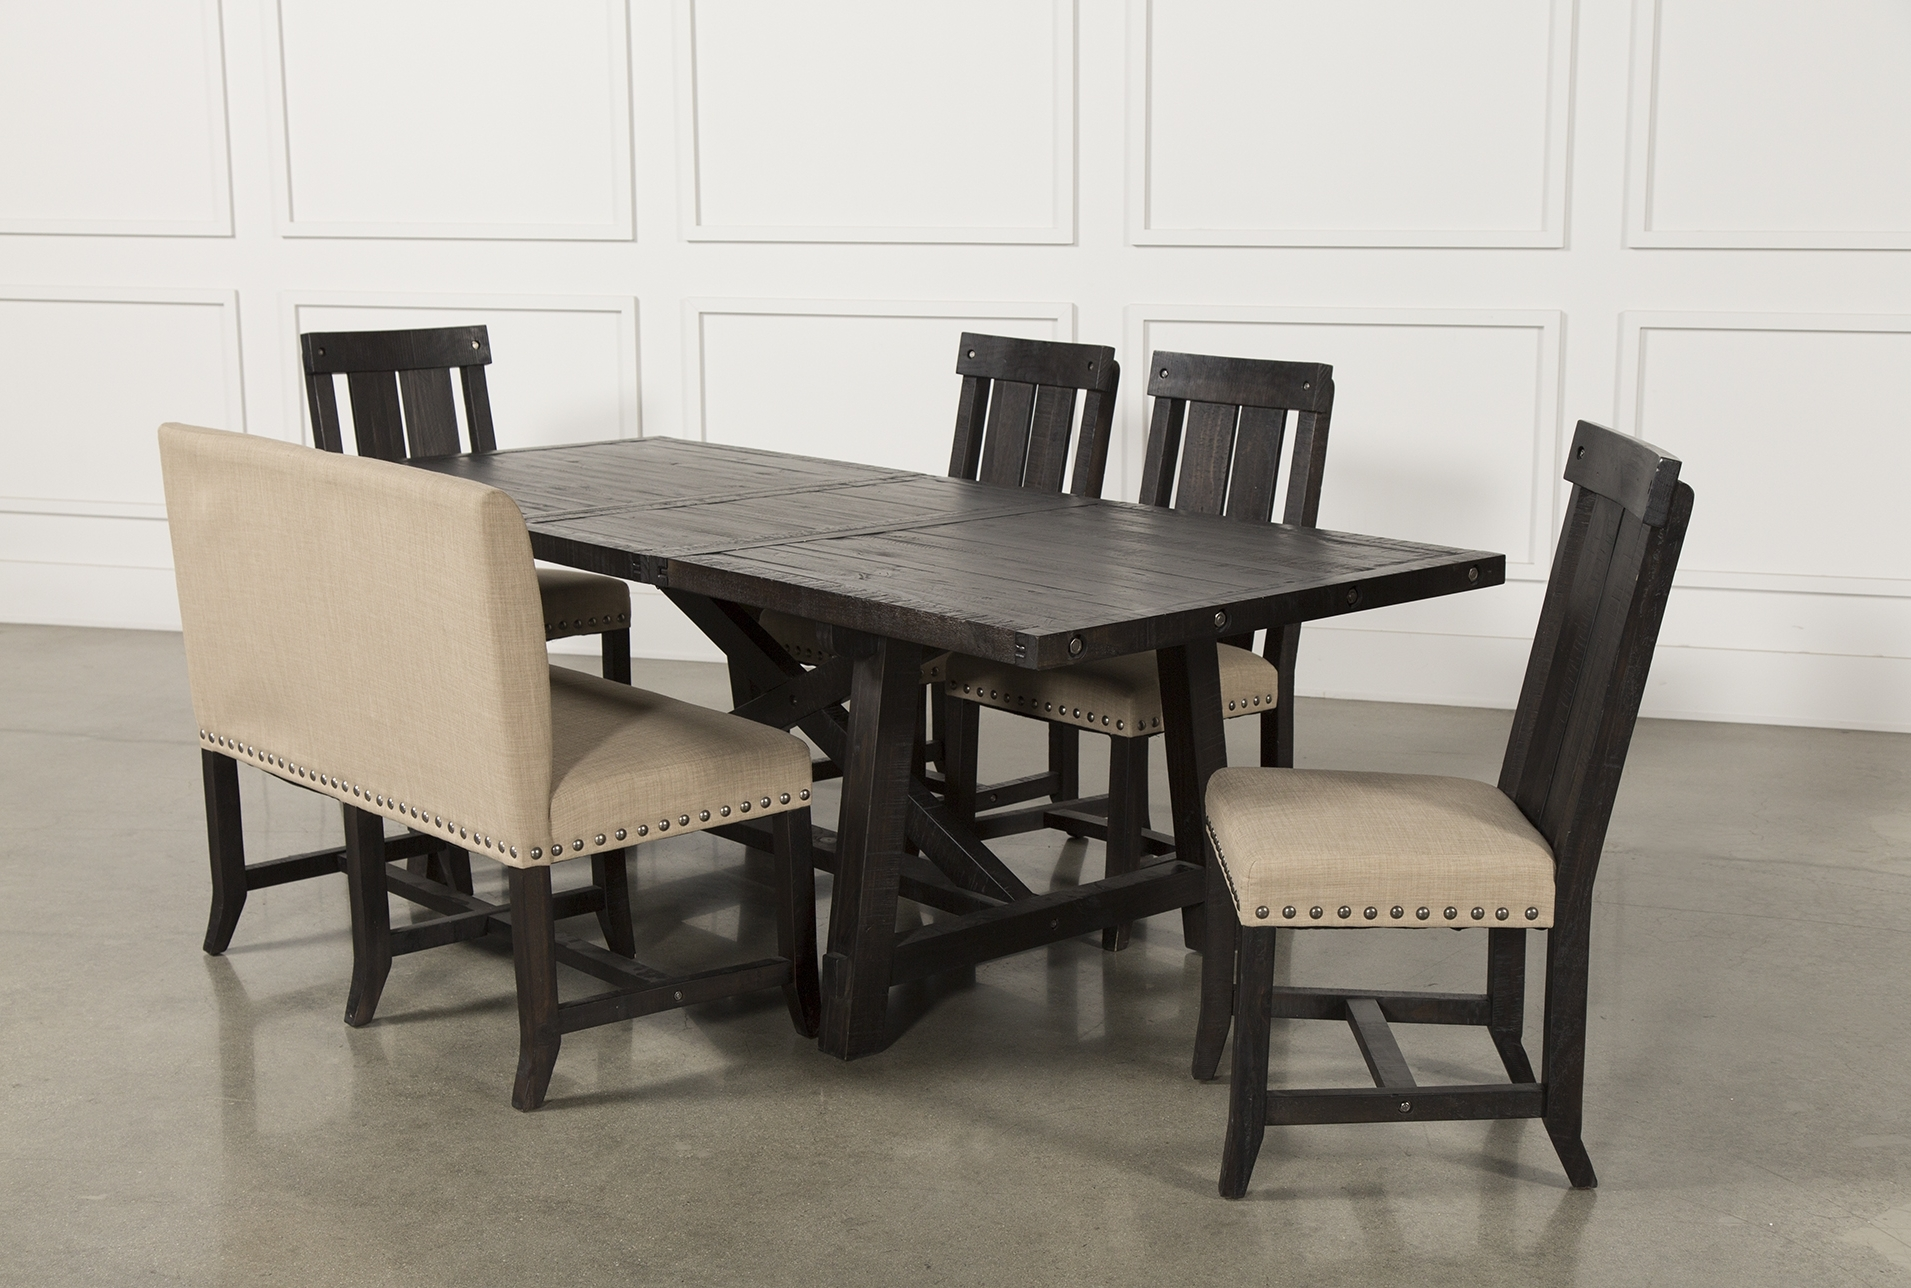 Products With Jaxon Grey 6 Piece Rectangle Extension Dining Sets With Bench & Wood Chairs (Gallery 4 of 25)